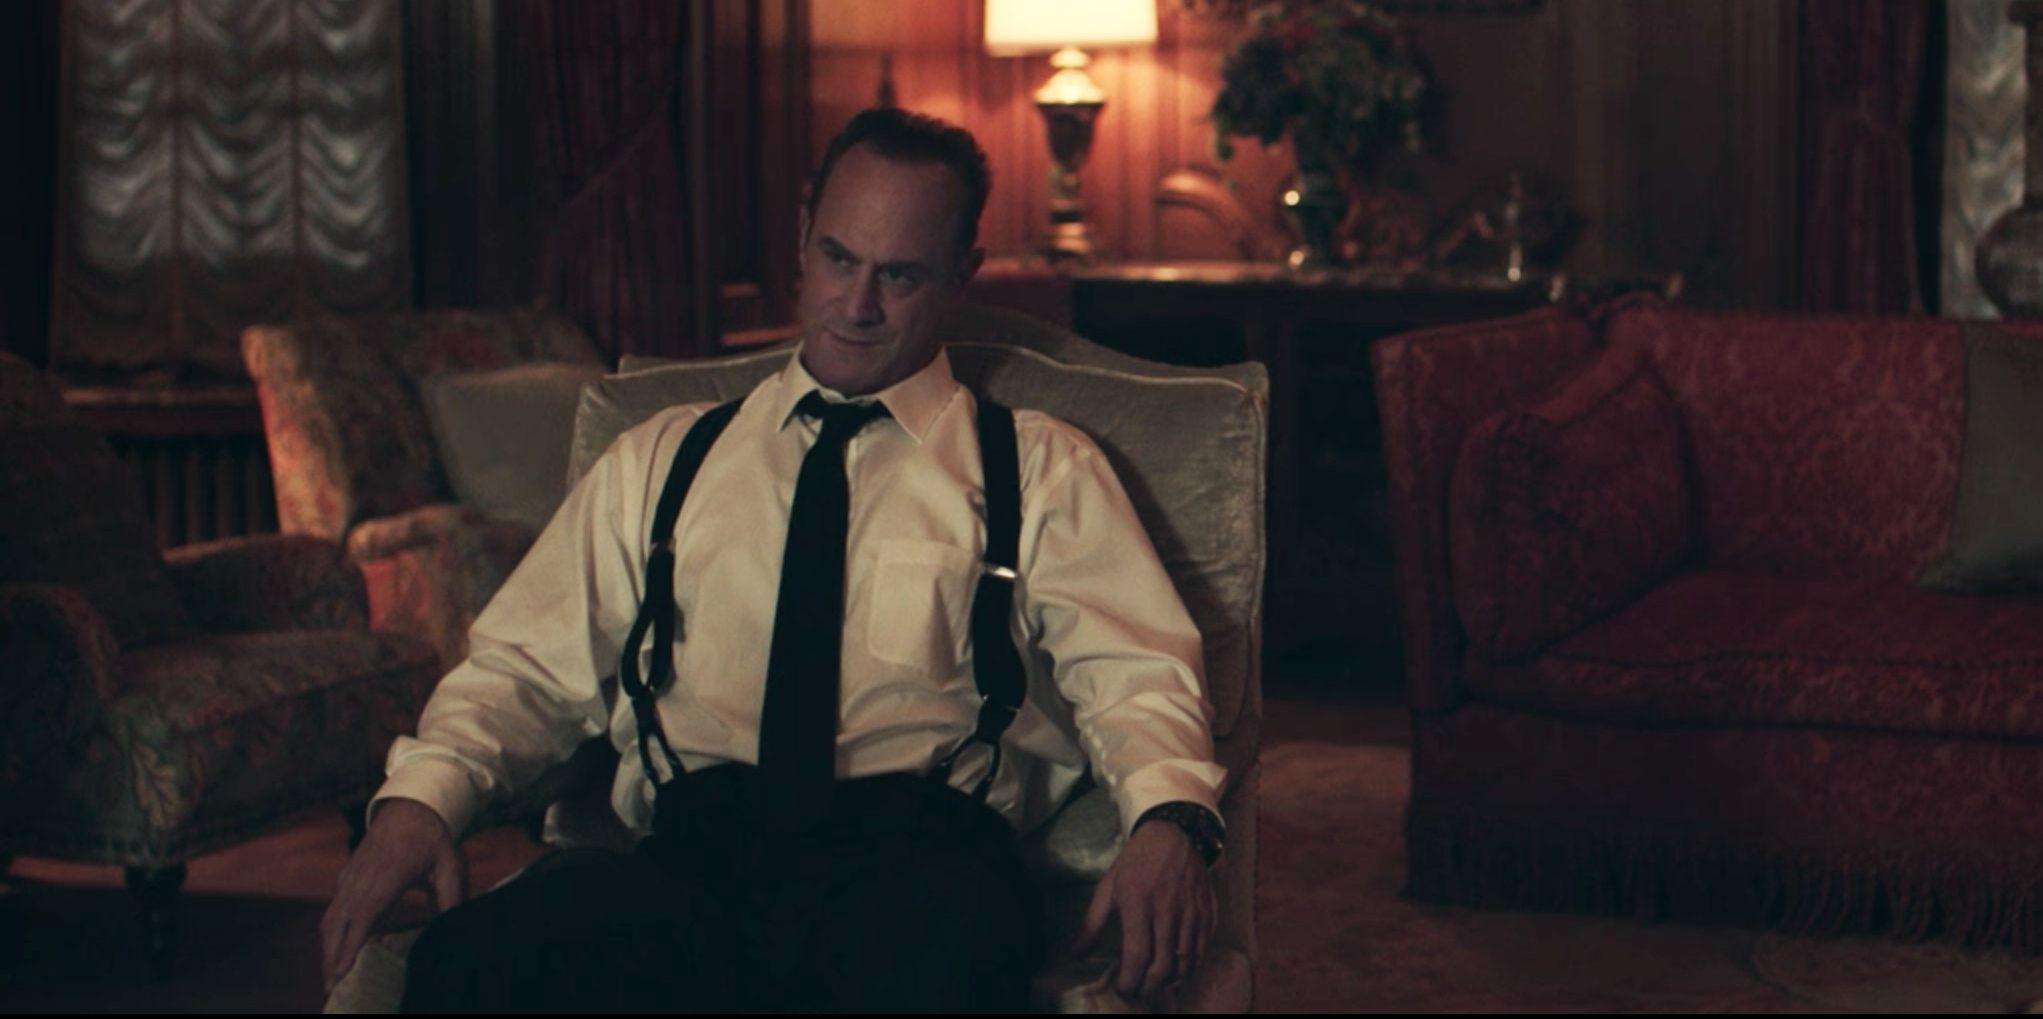 Chris Meloni aka Detective Elliot Stabler Is on 'The Handmaid's Tale' Now and Fans Are Legit Unwell